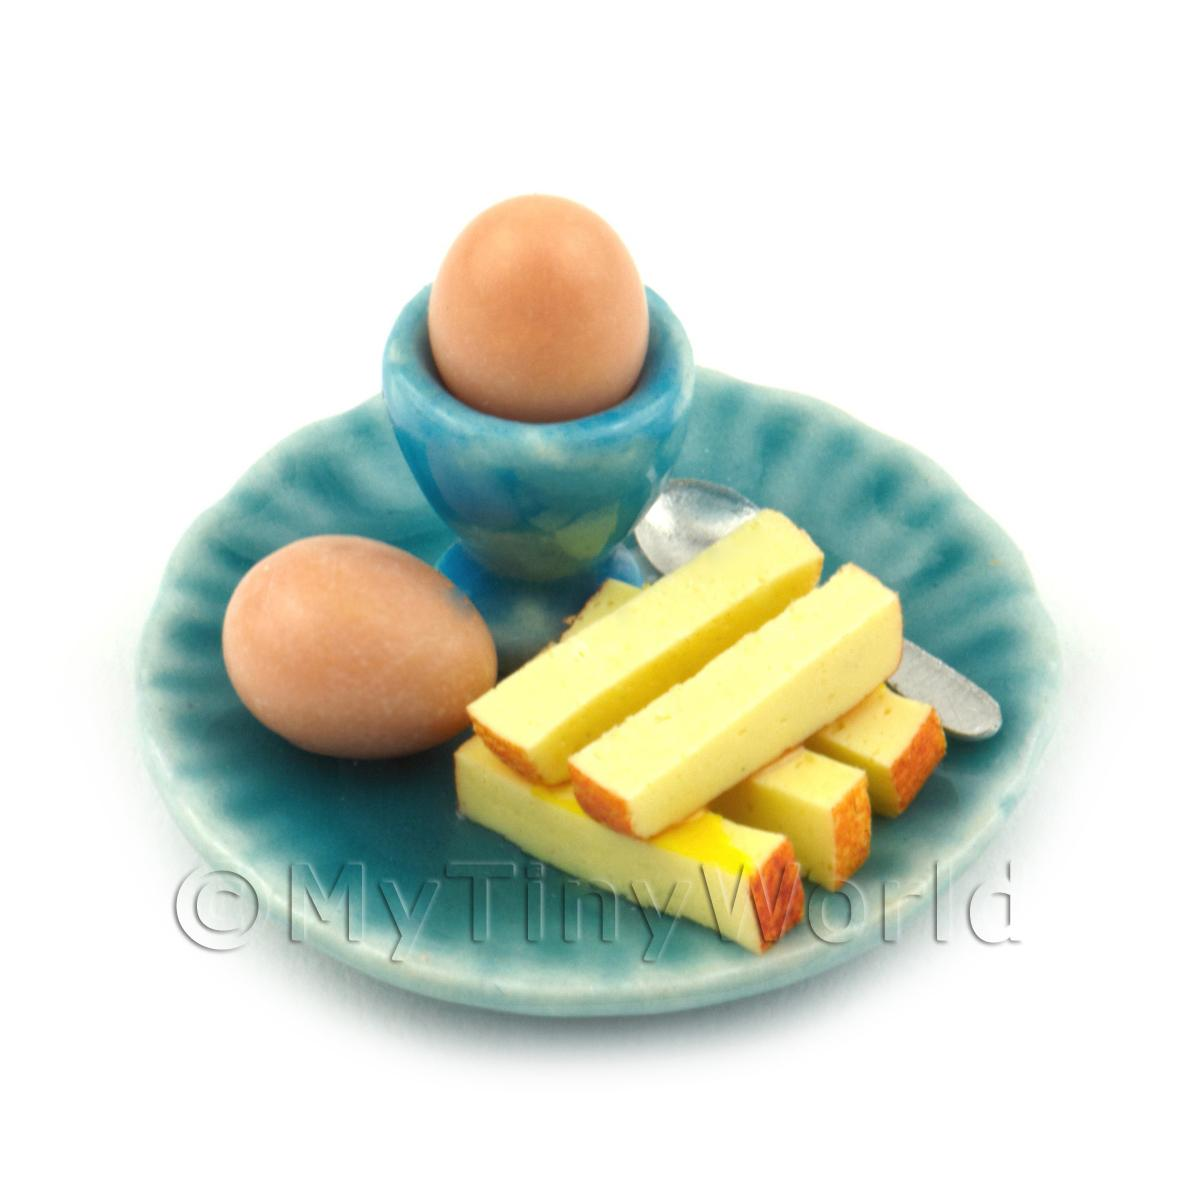 Dolls House Miniature Boiled Egg and Toast on A Blue Plate Style 1